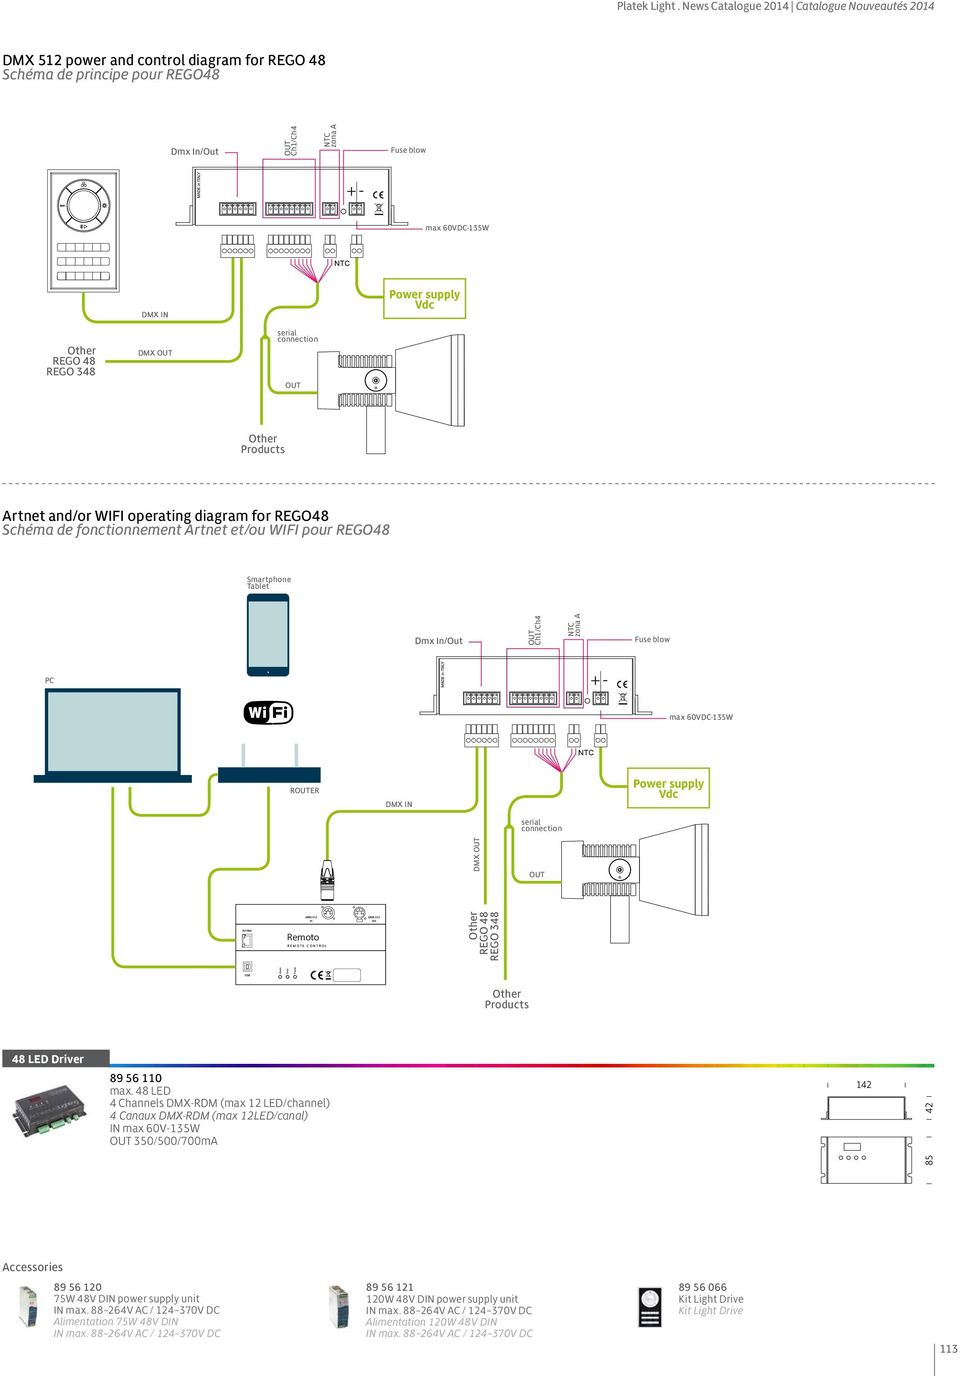 348 DMX serial connection Products Artnet and/or WIFI operating diagram for REGO48 Schéma de fonctionnement Artnet et/ou WIFI pour REGO48 Smartphone Tablet Dmx In/Out Ch1/Ch4 zona A Fuse blow PC + -